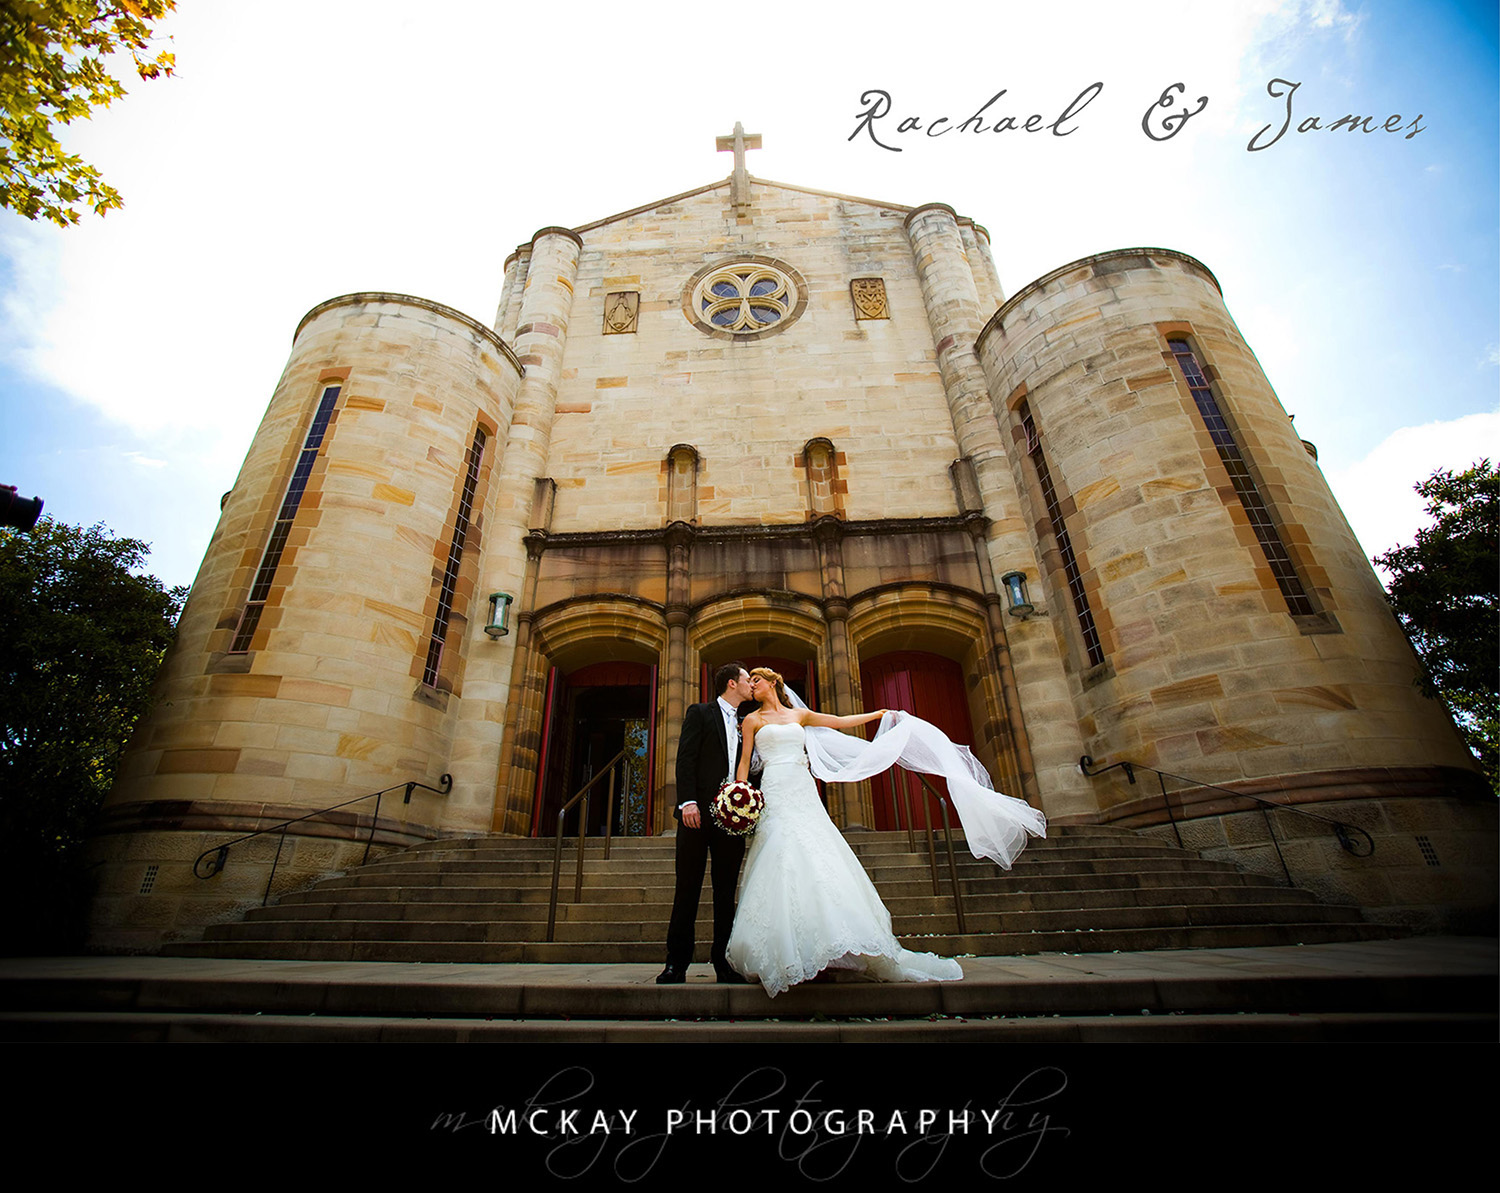 Rachael & James were married at St Mary